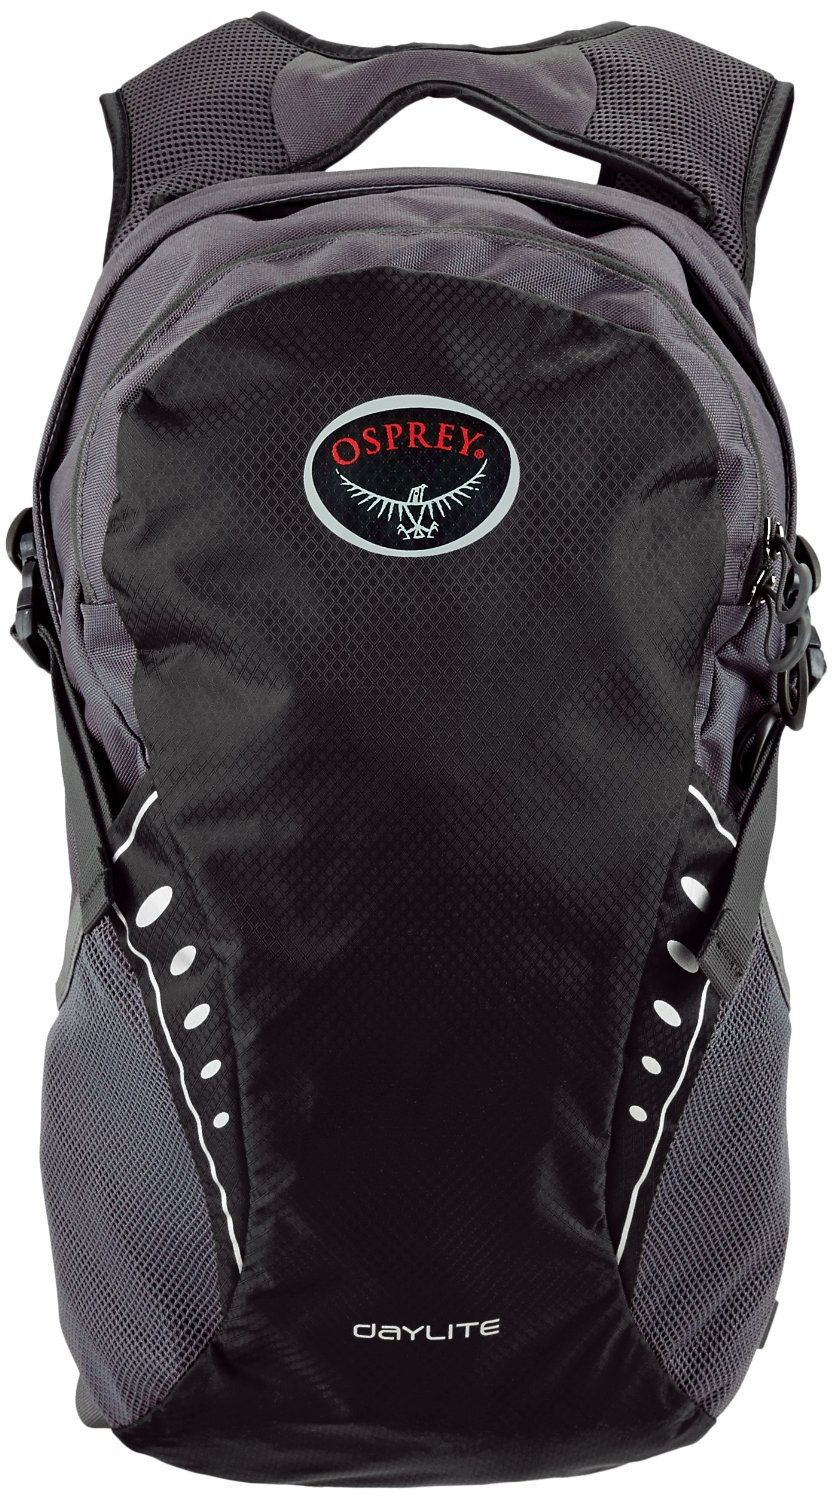 Osprey Daylite Backpack Equals Quality Traveling Monarch